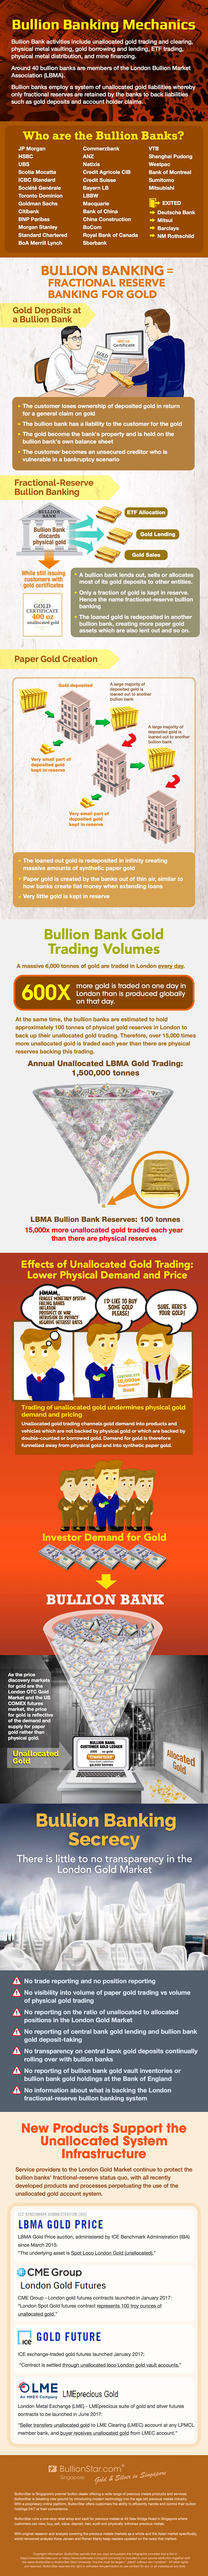 Bullion Banks and Bullion Banking Mechanics